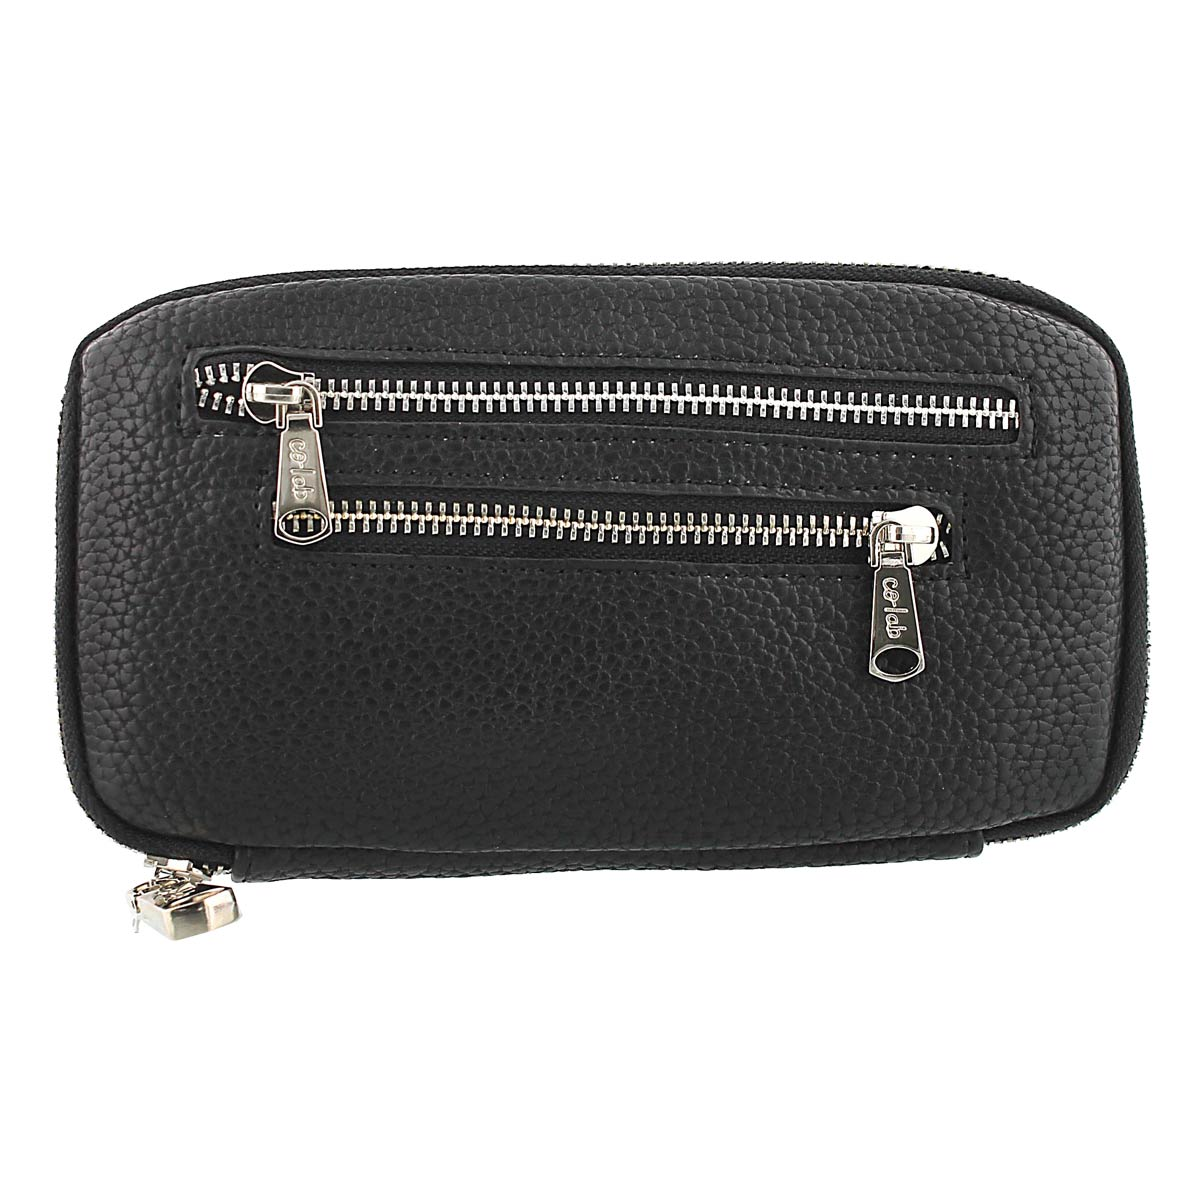 Lds Double Zip World black wallet